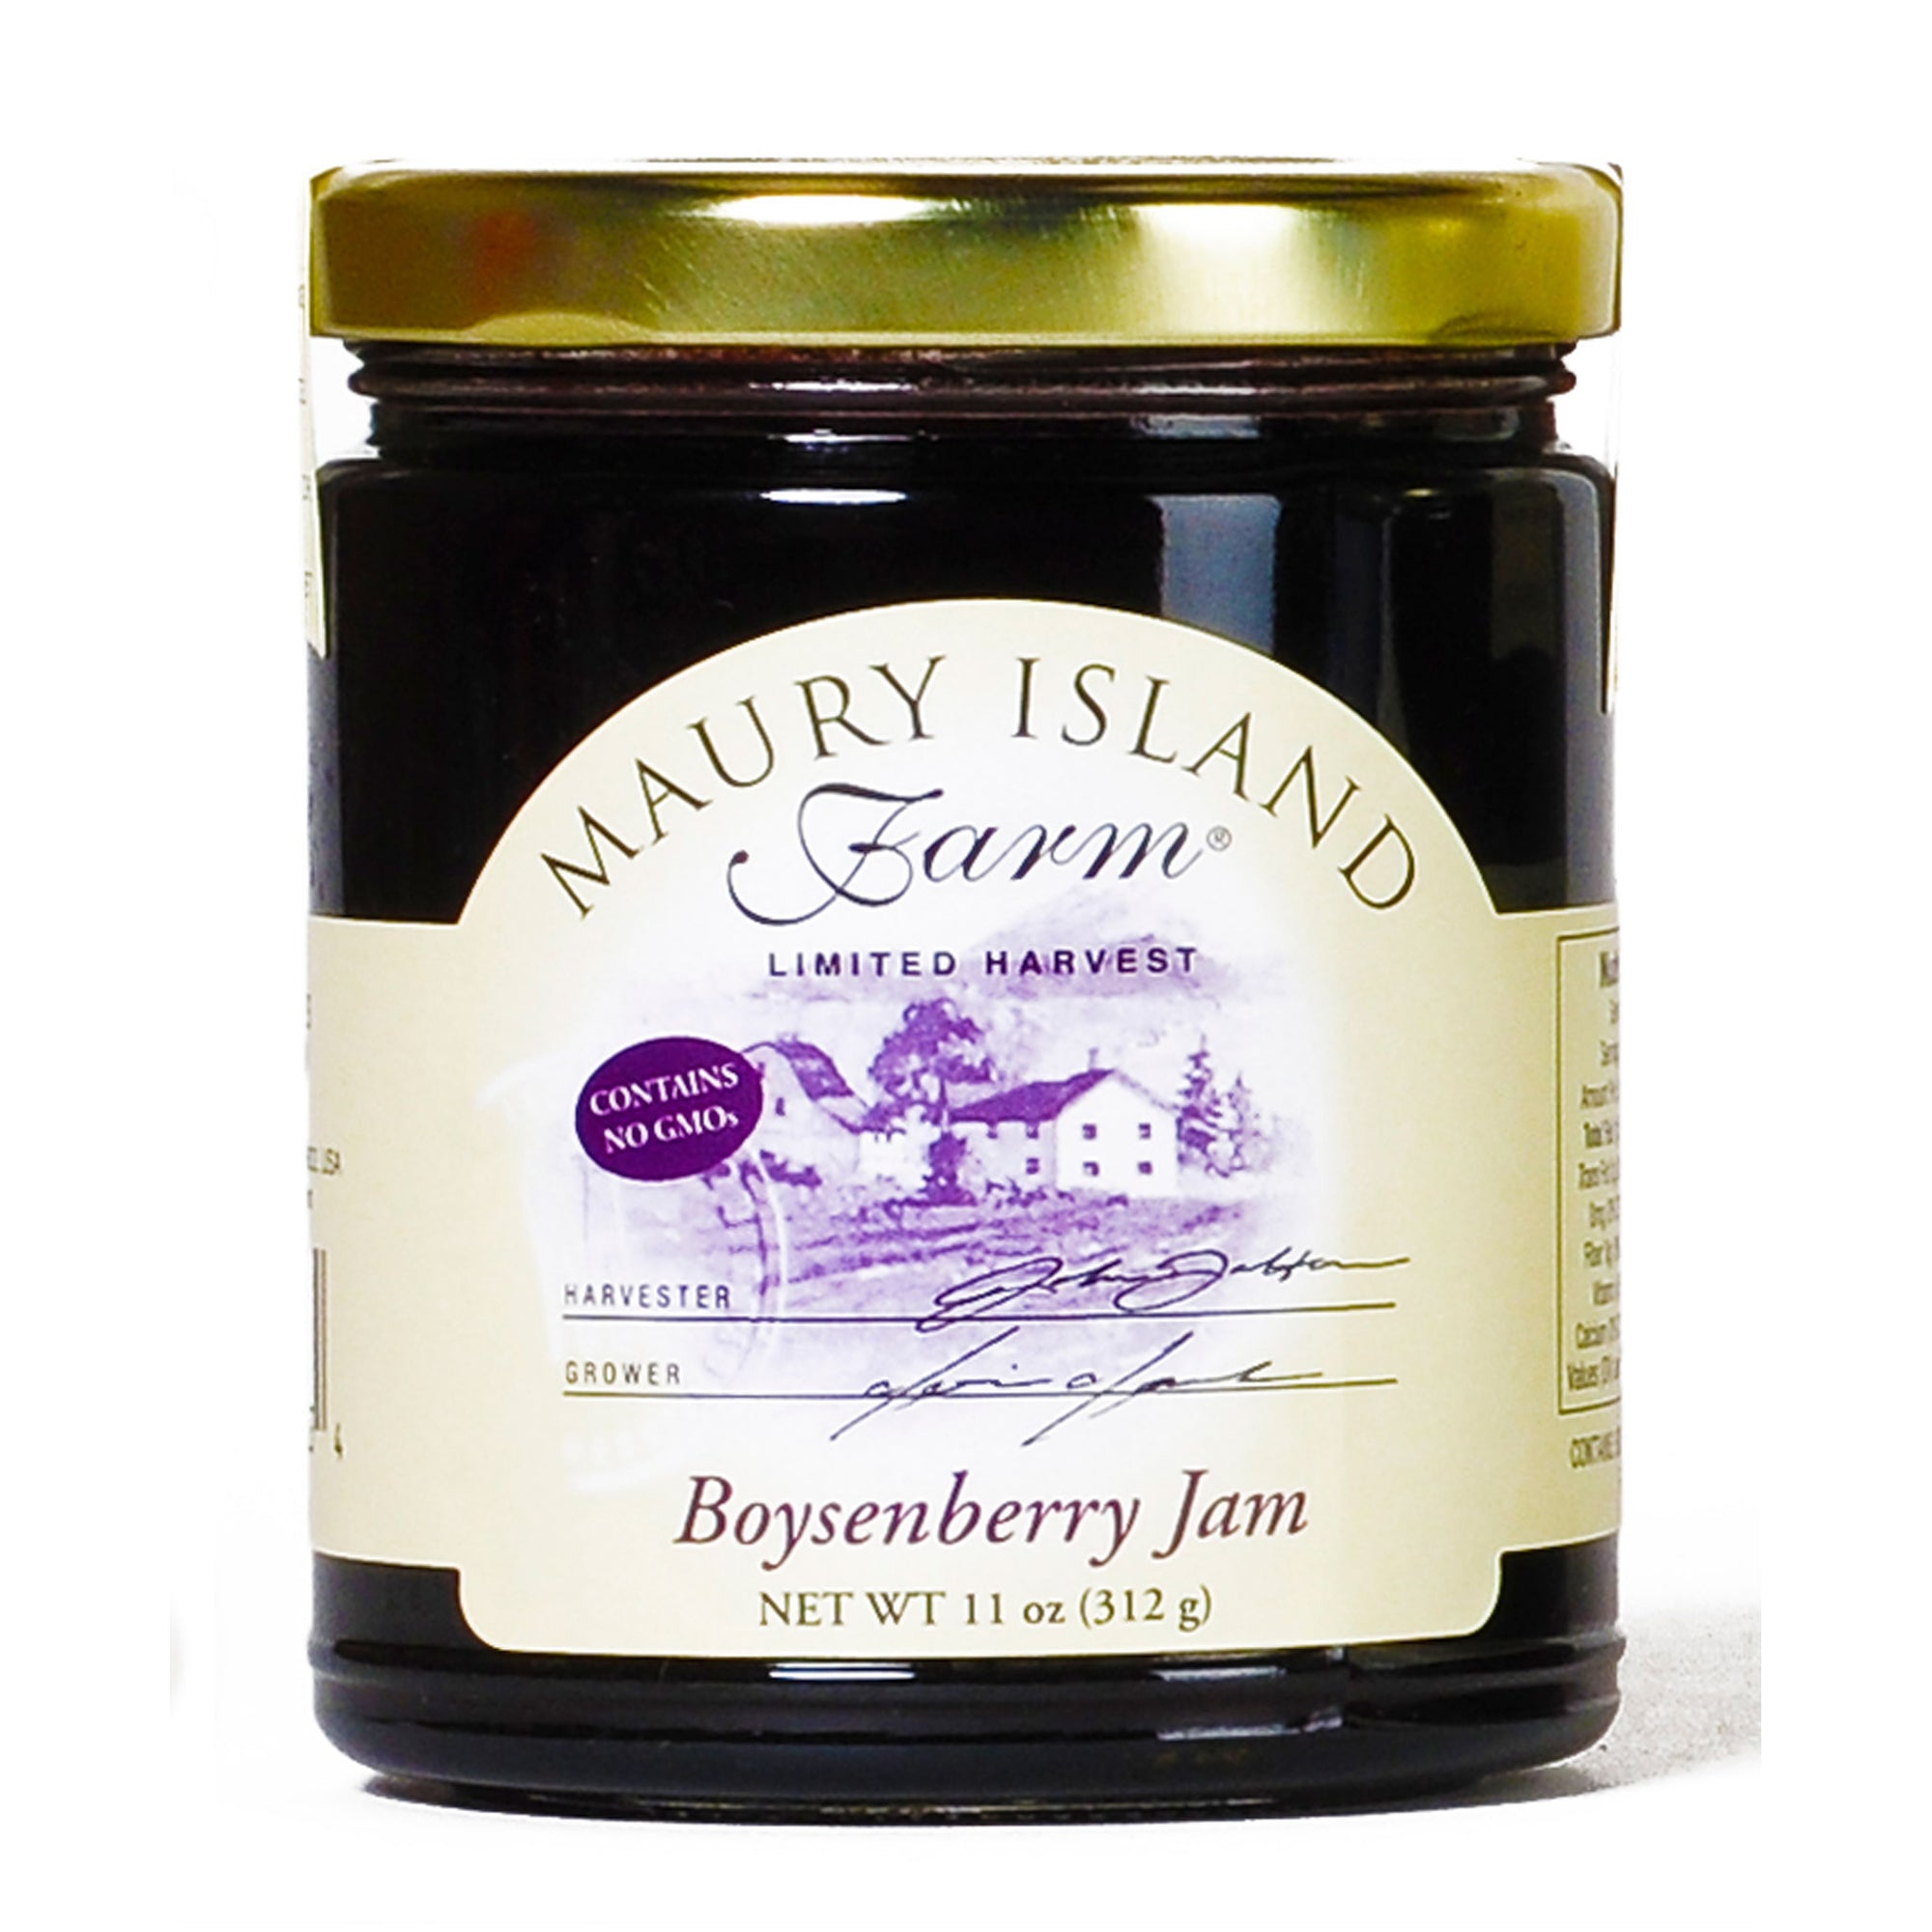 Maury Island Farm Limited Harvest Non-GMO Boysenberry Jam 11-Ounce Glass Jar